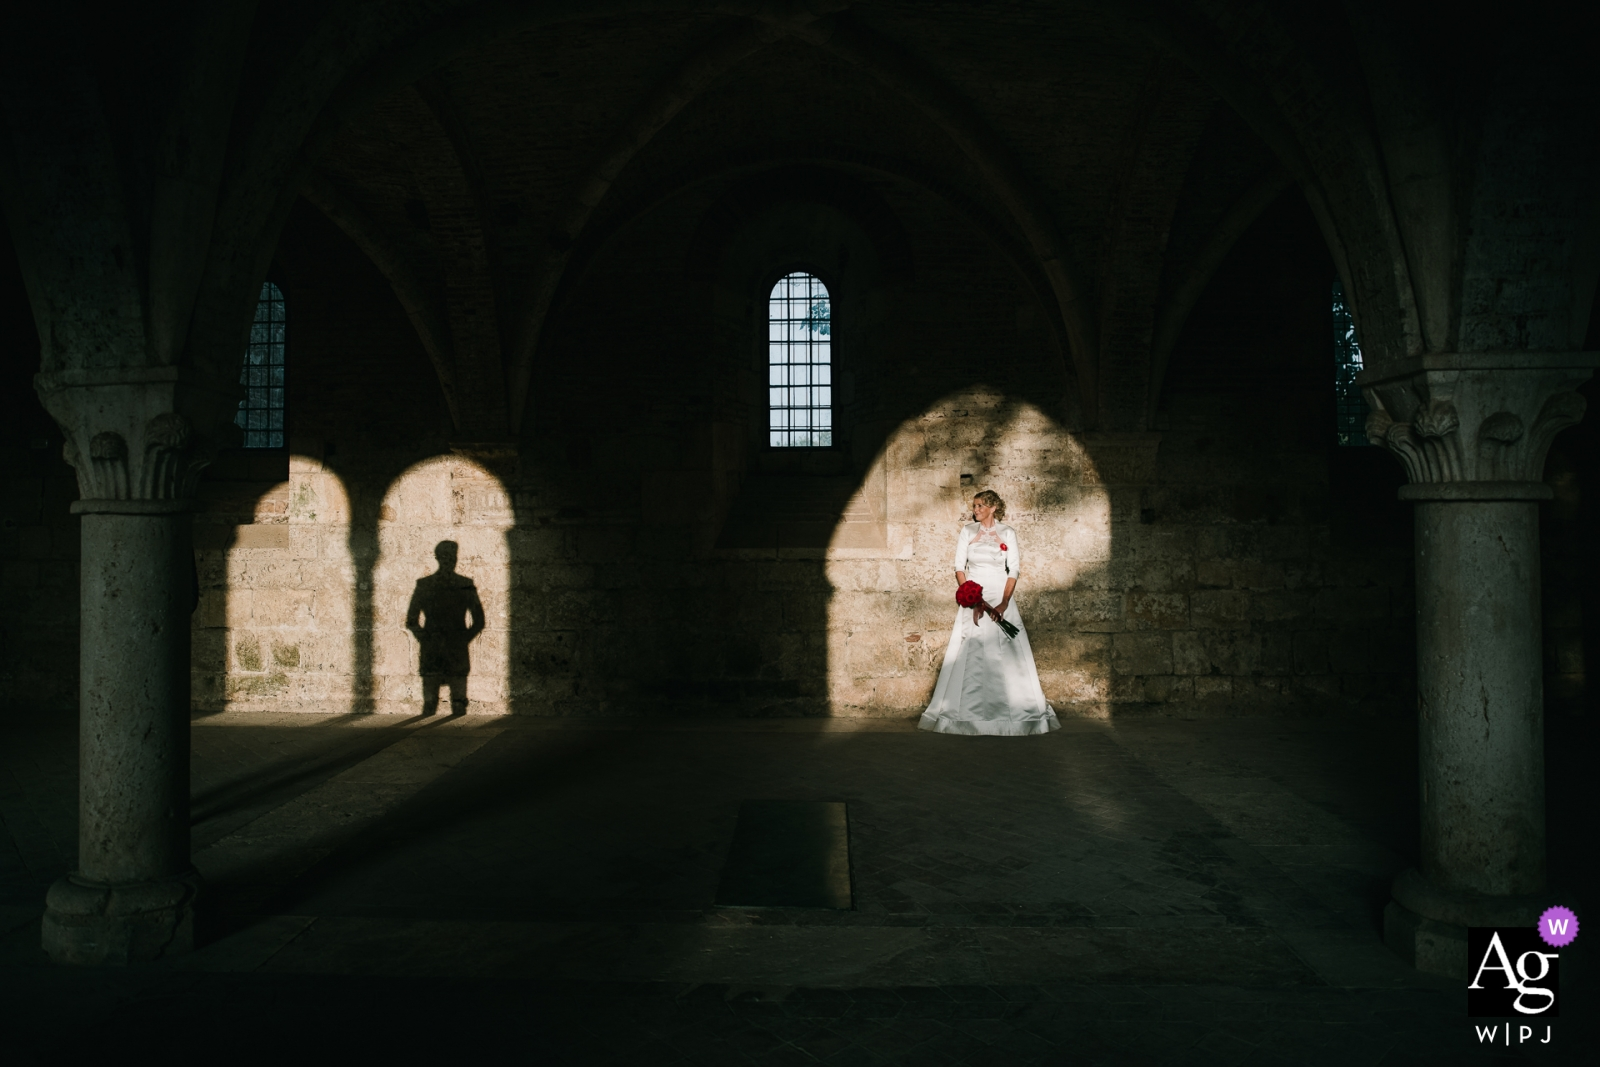 San Galgano Abbey, Siena photography | Tuscany wedding day portrait photography with the bride and groom in the shadows and sunlight